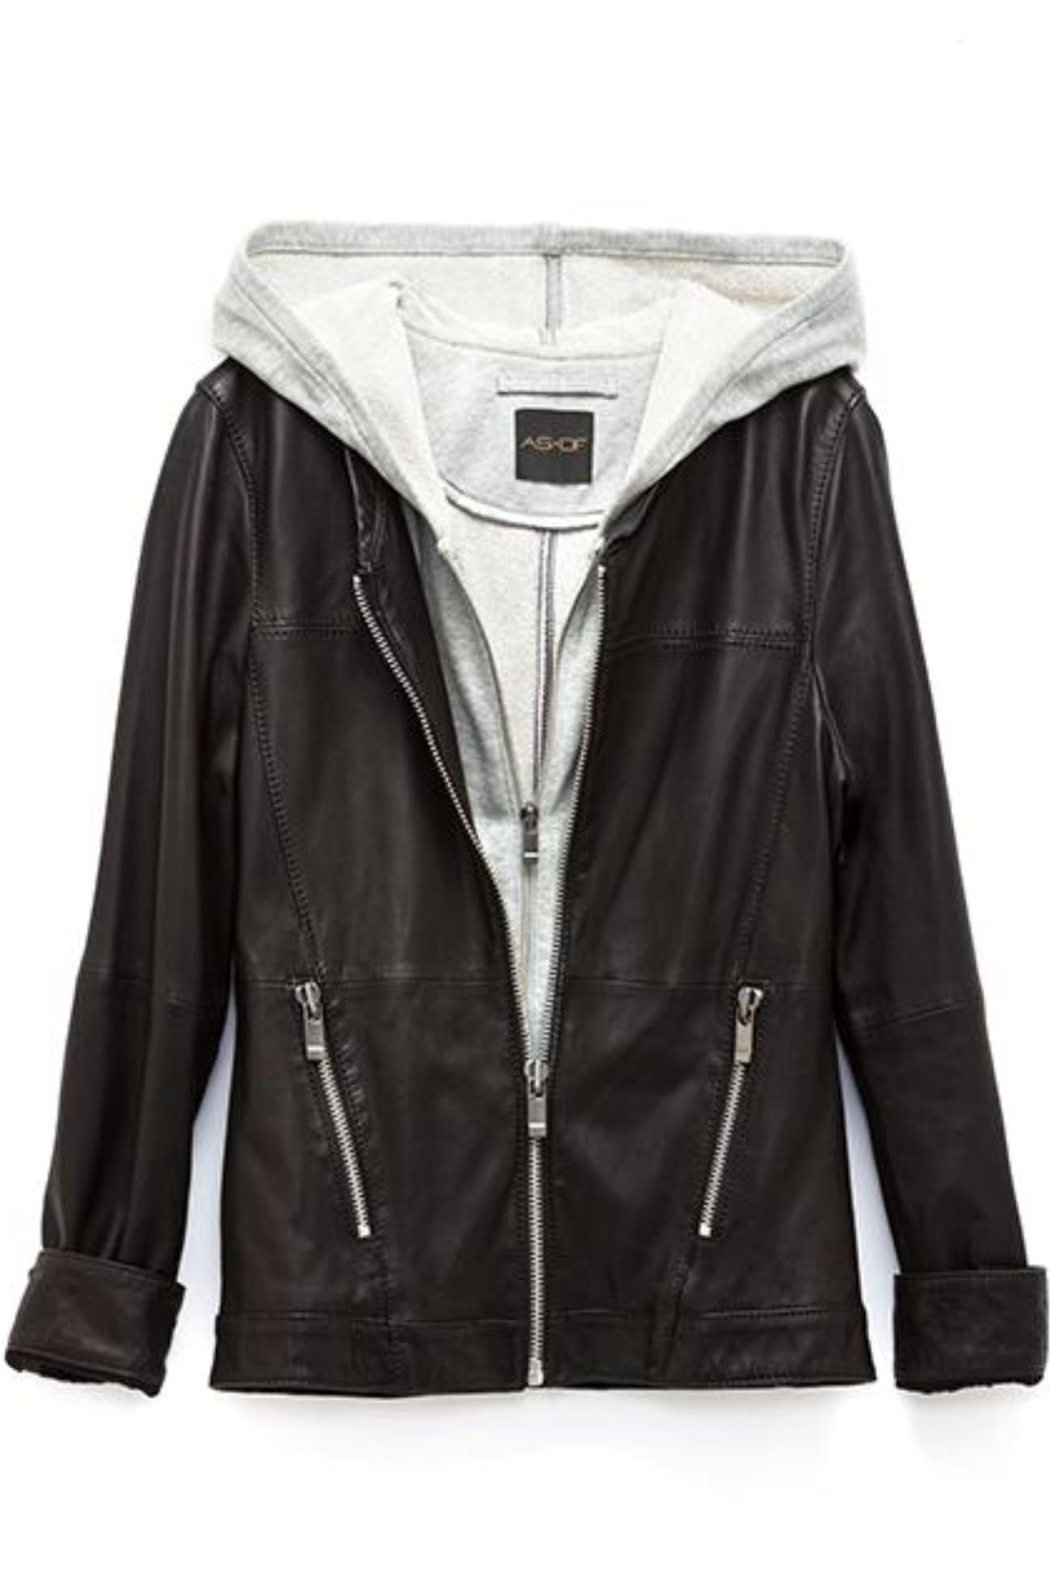 AS by DF Layered Leather Jacket - Side Cropped Image